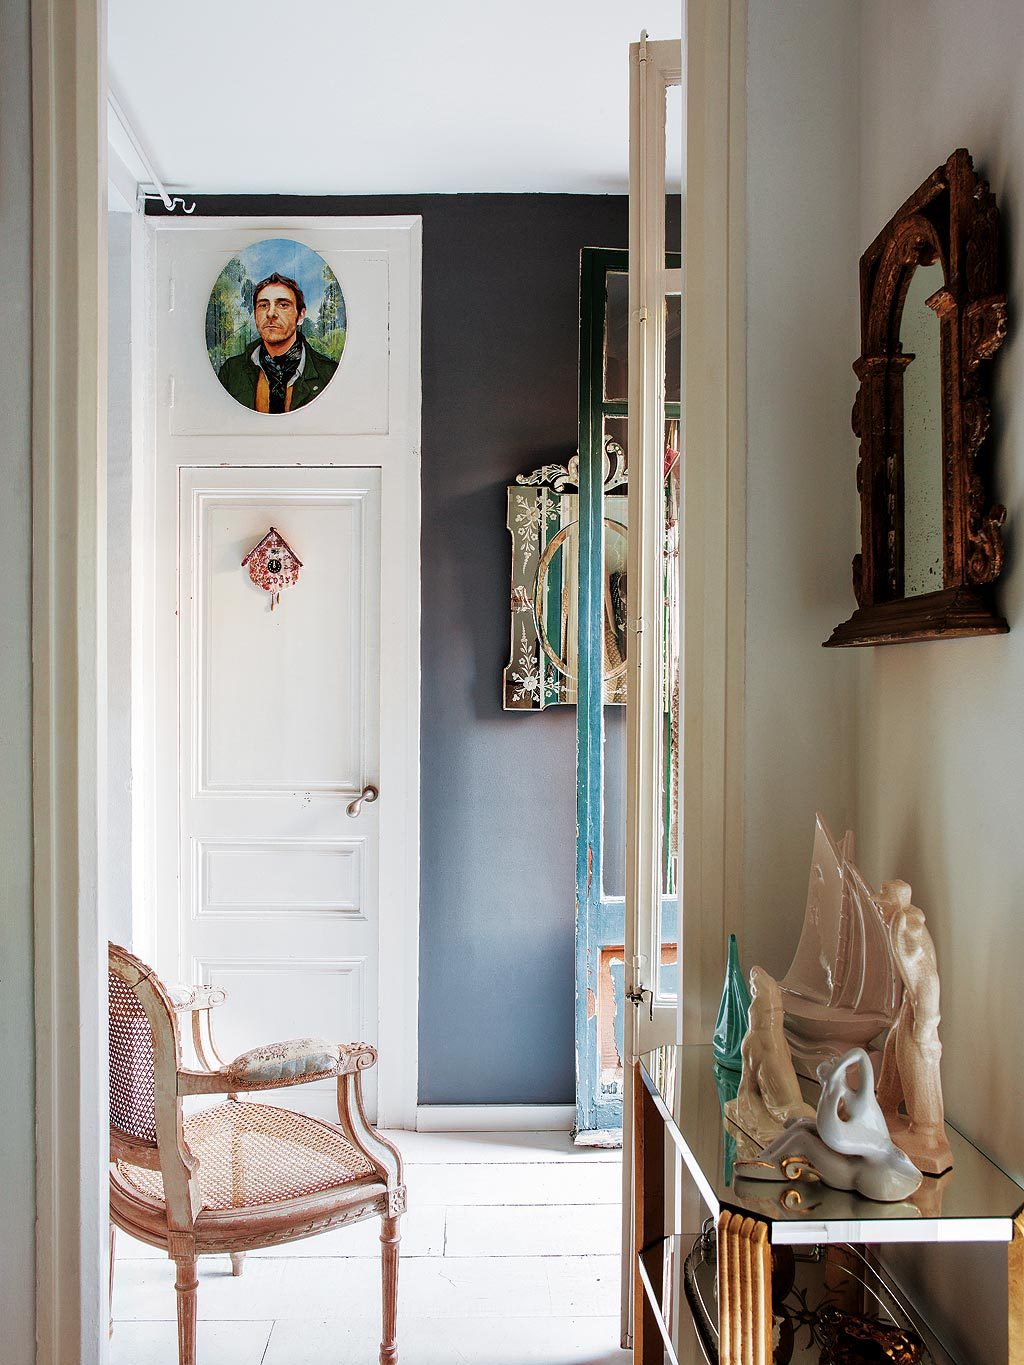 small-mirror-hallway-inspiration-black-paint-walls-french-provincial-style-doors-moulding-renovation-decorating-with-mirrors-console-table-entrance-ideas